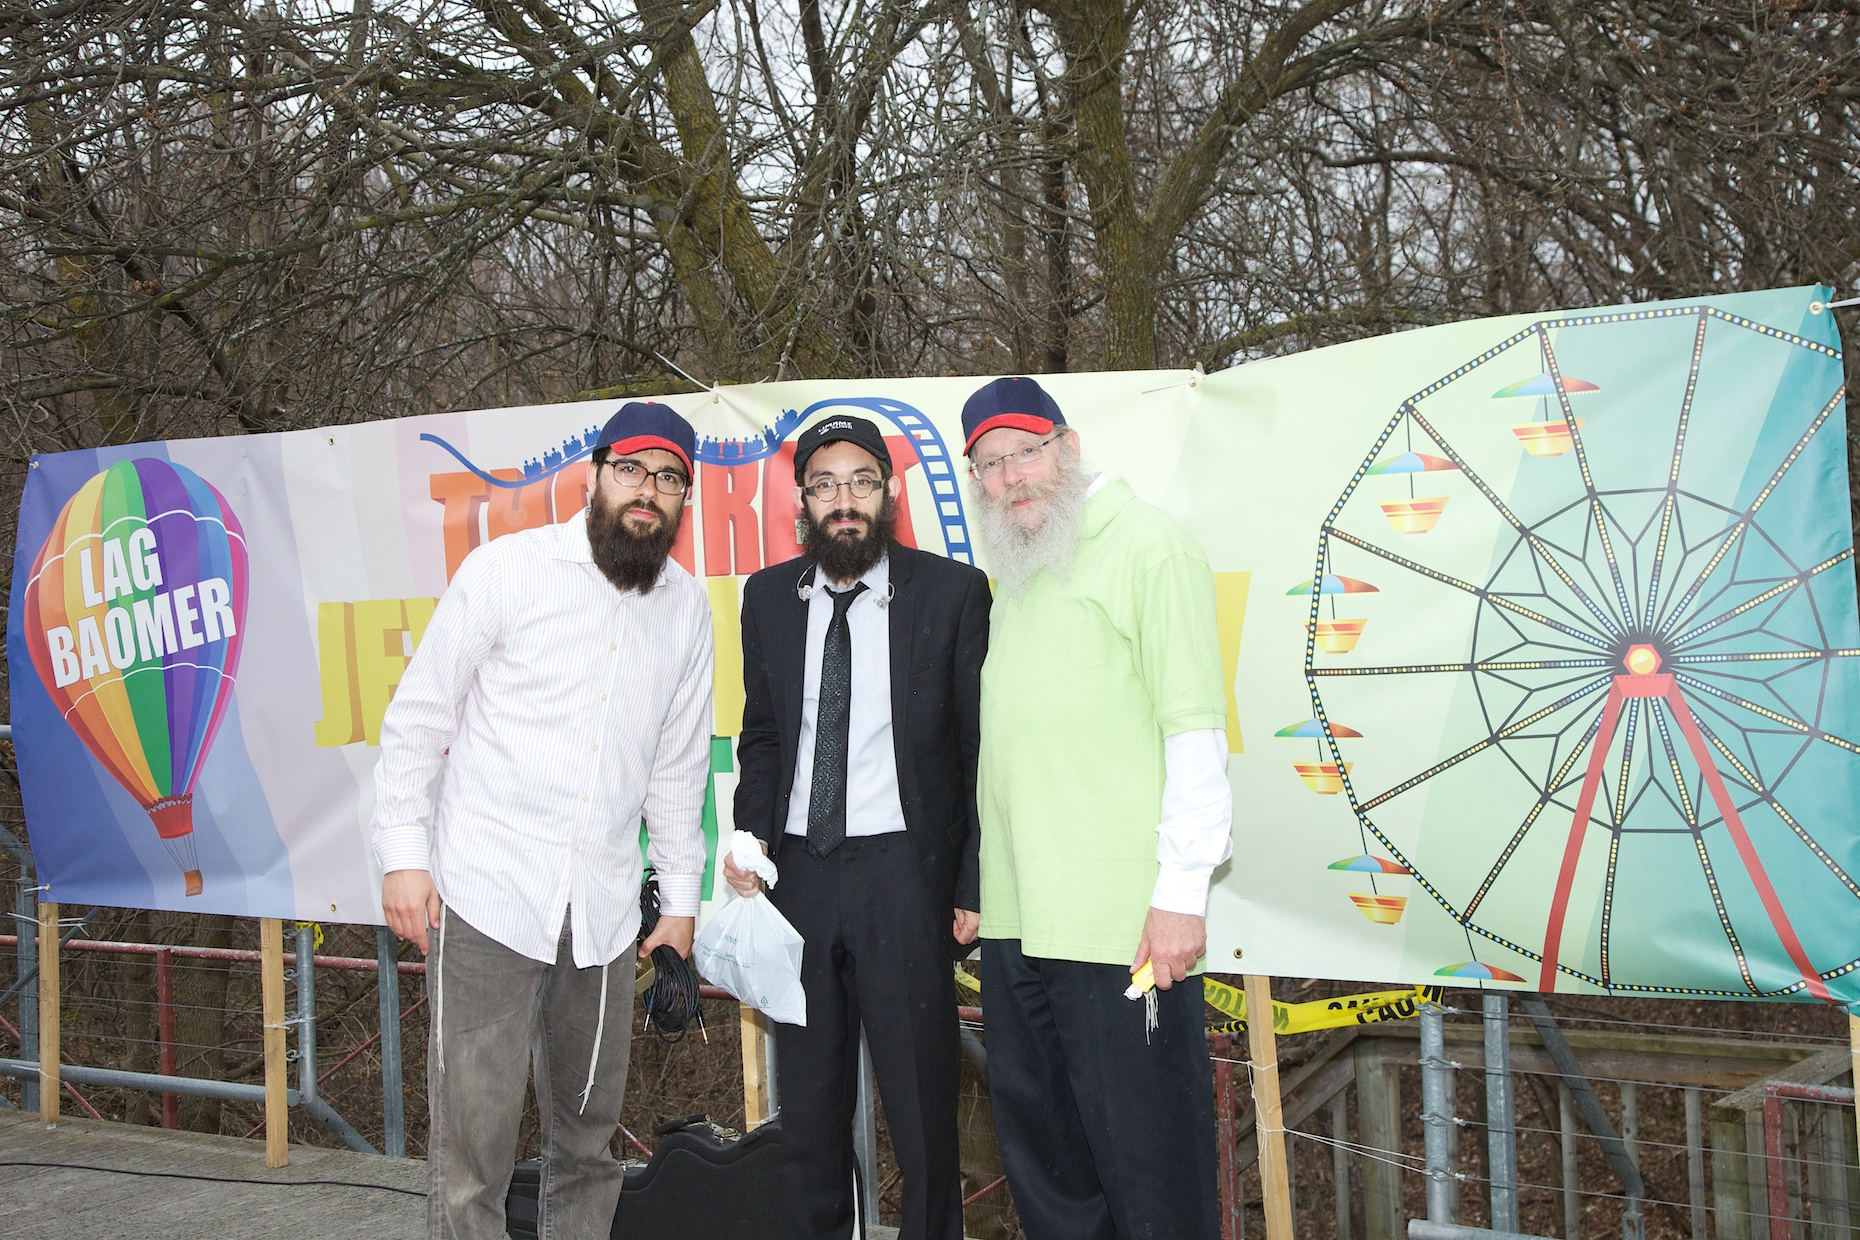 LagBaomer-5773-s_415